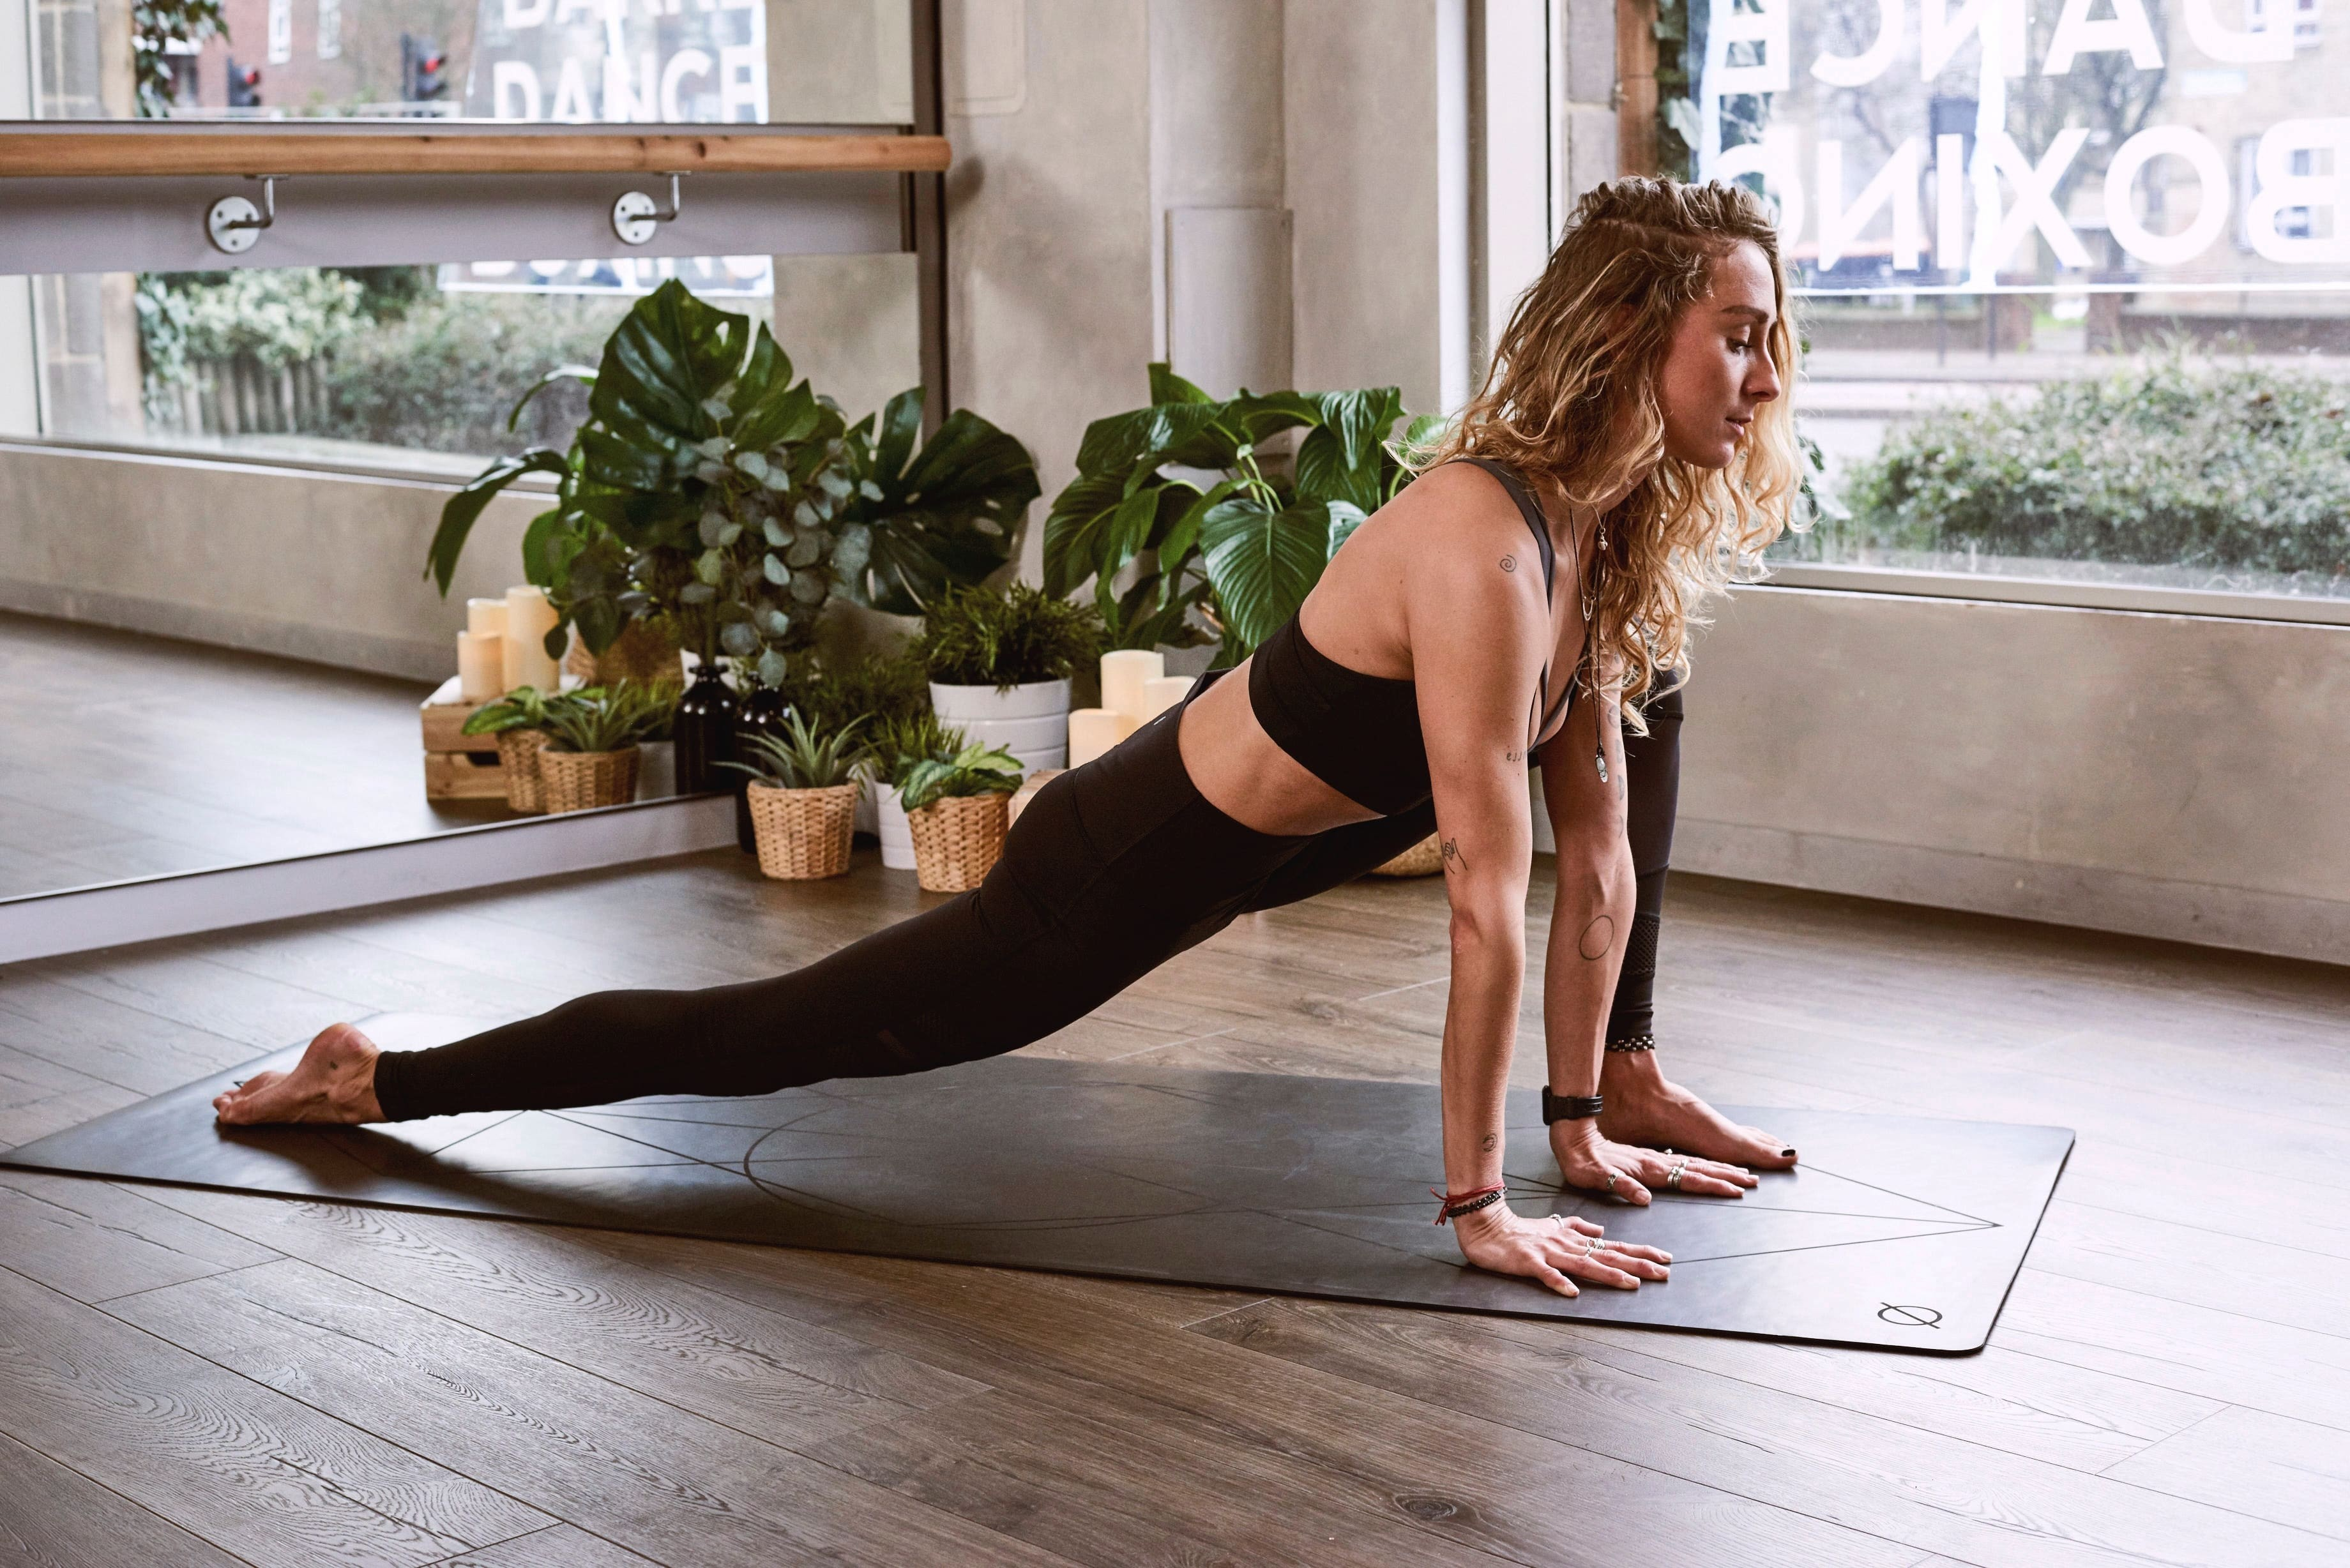 woman doing yoga in a relaxed studio, with a window and mirror in background.